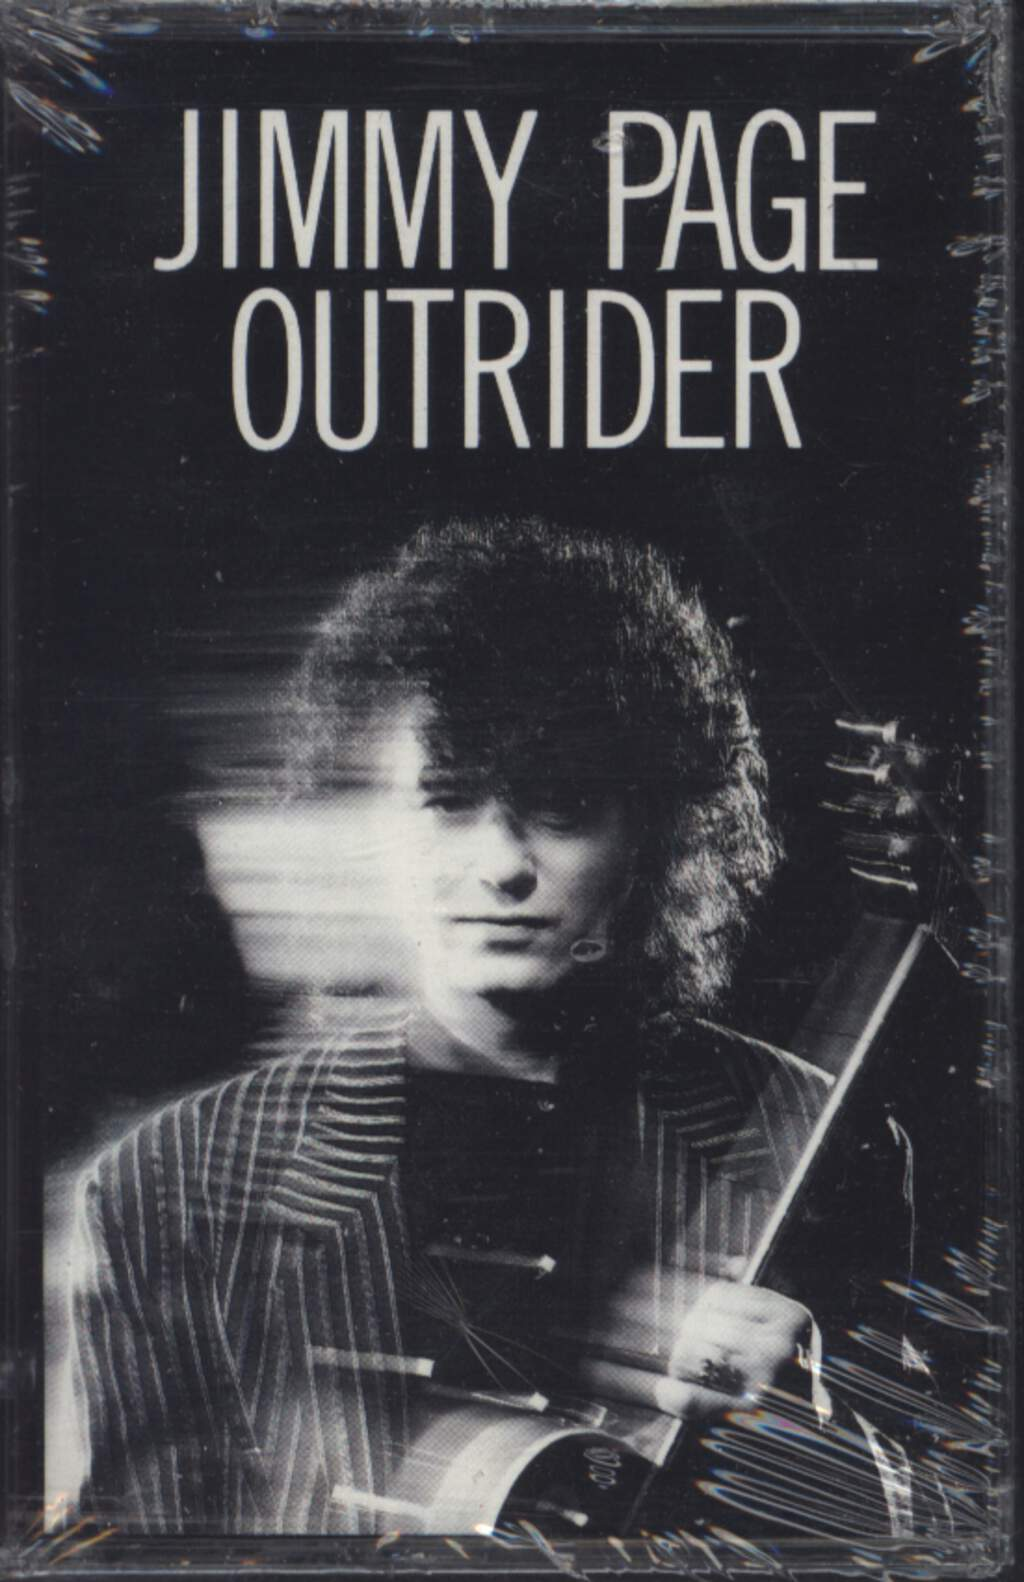 Jimmy Page: Outrider, Tape